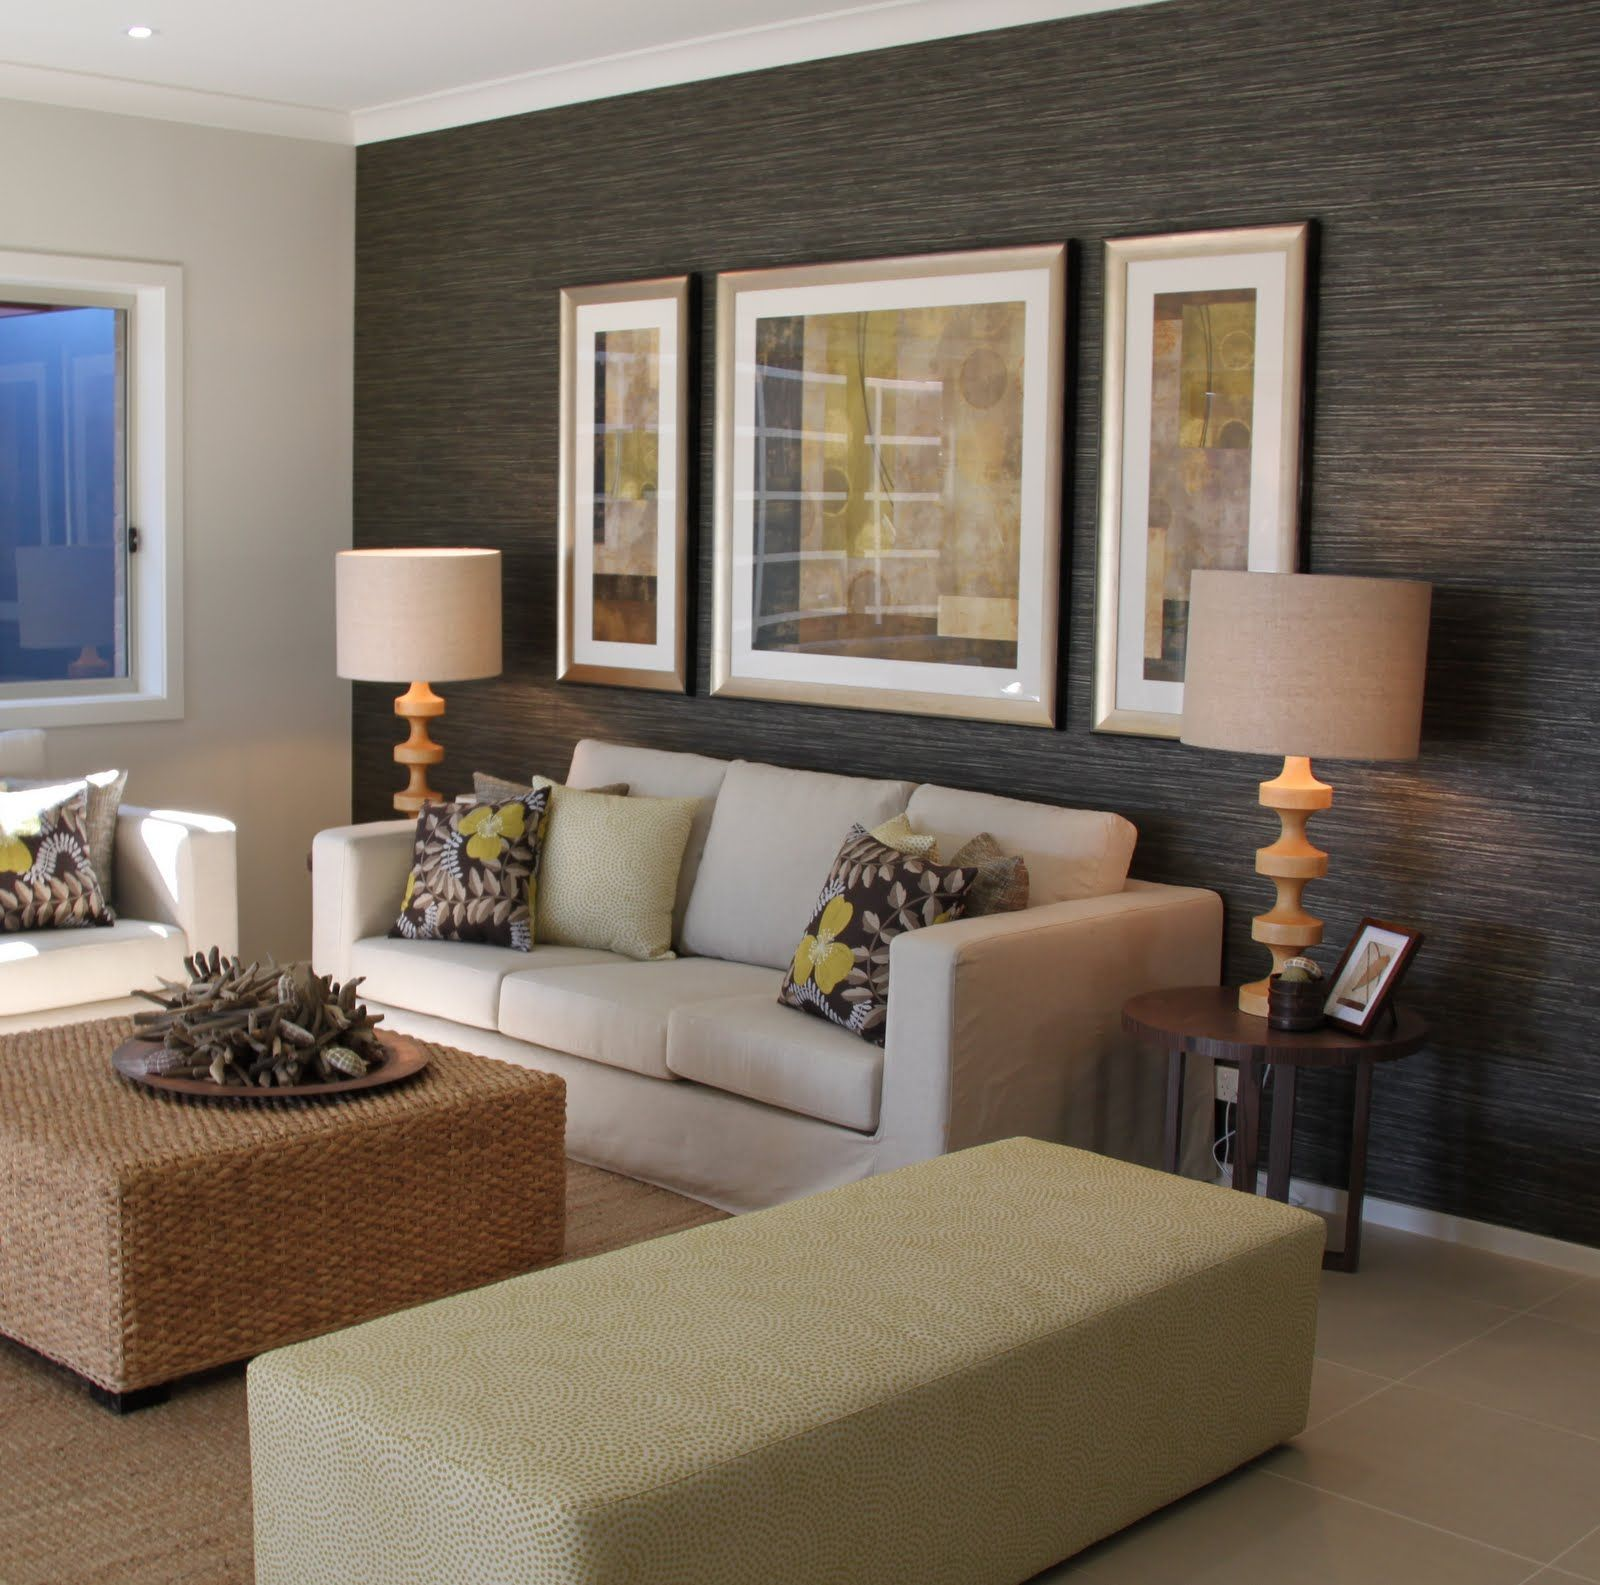 angela steyn interiors eco coastal house textured wallpaper darker feature wall in living room - Wallpaper Lounge Ideas